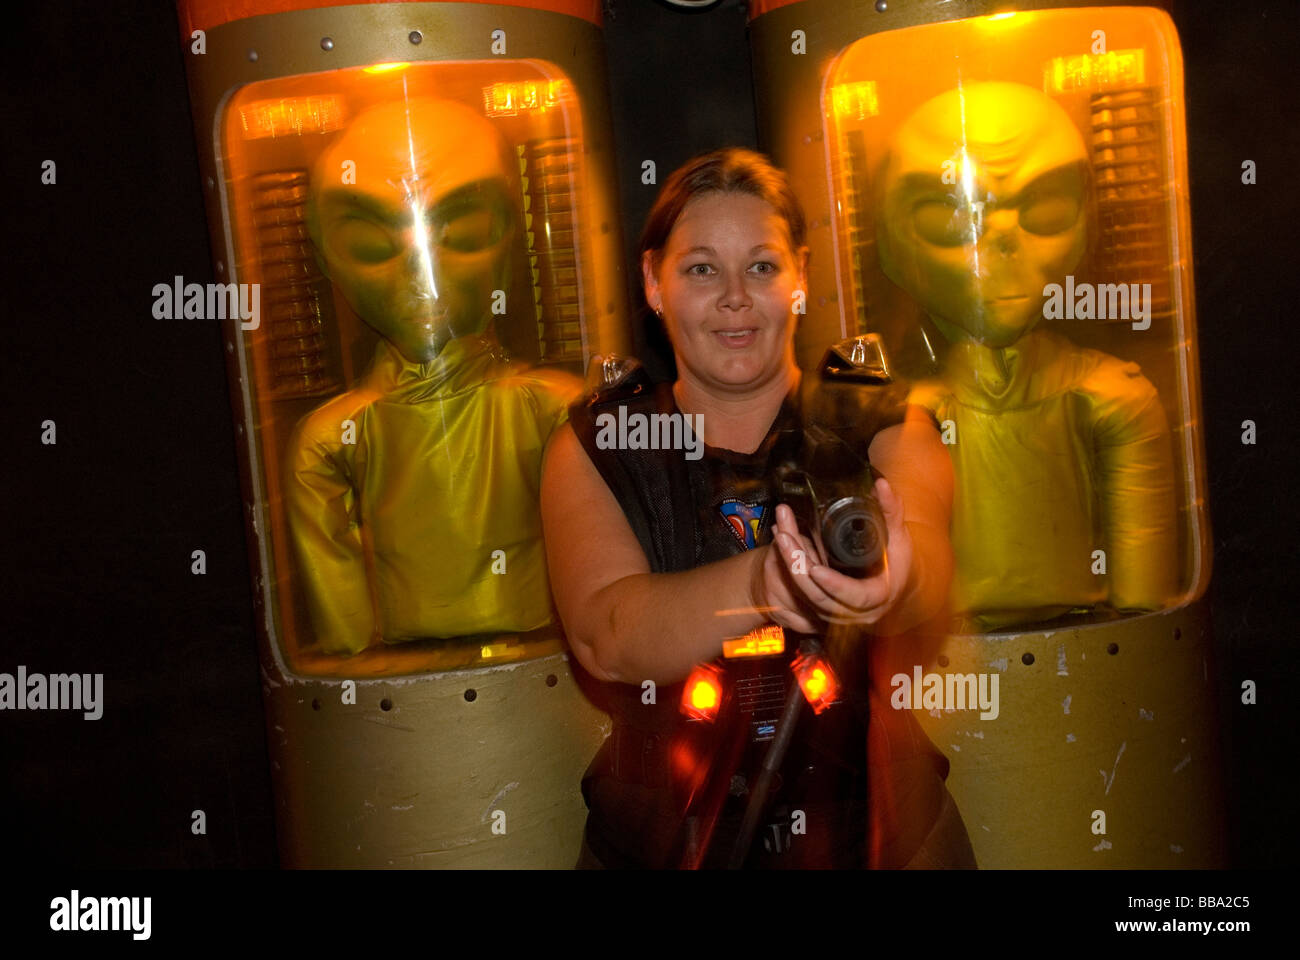 alien laser attack game - Stock Image